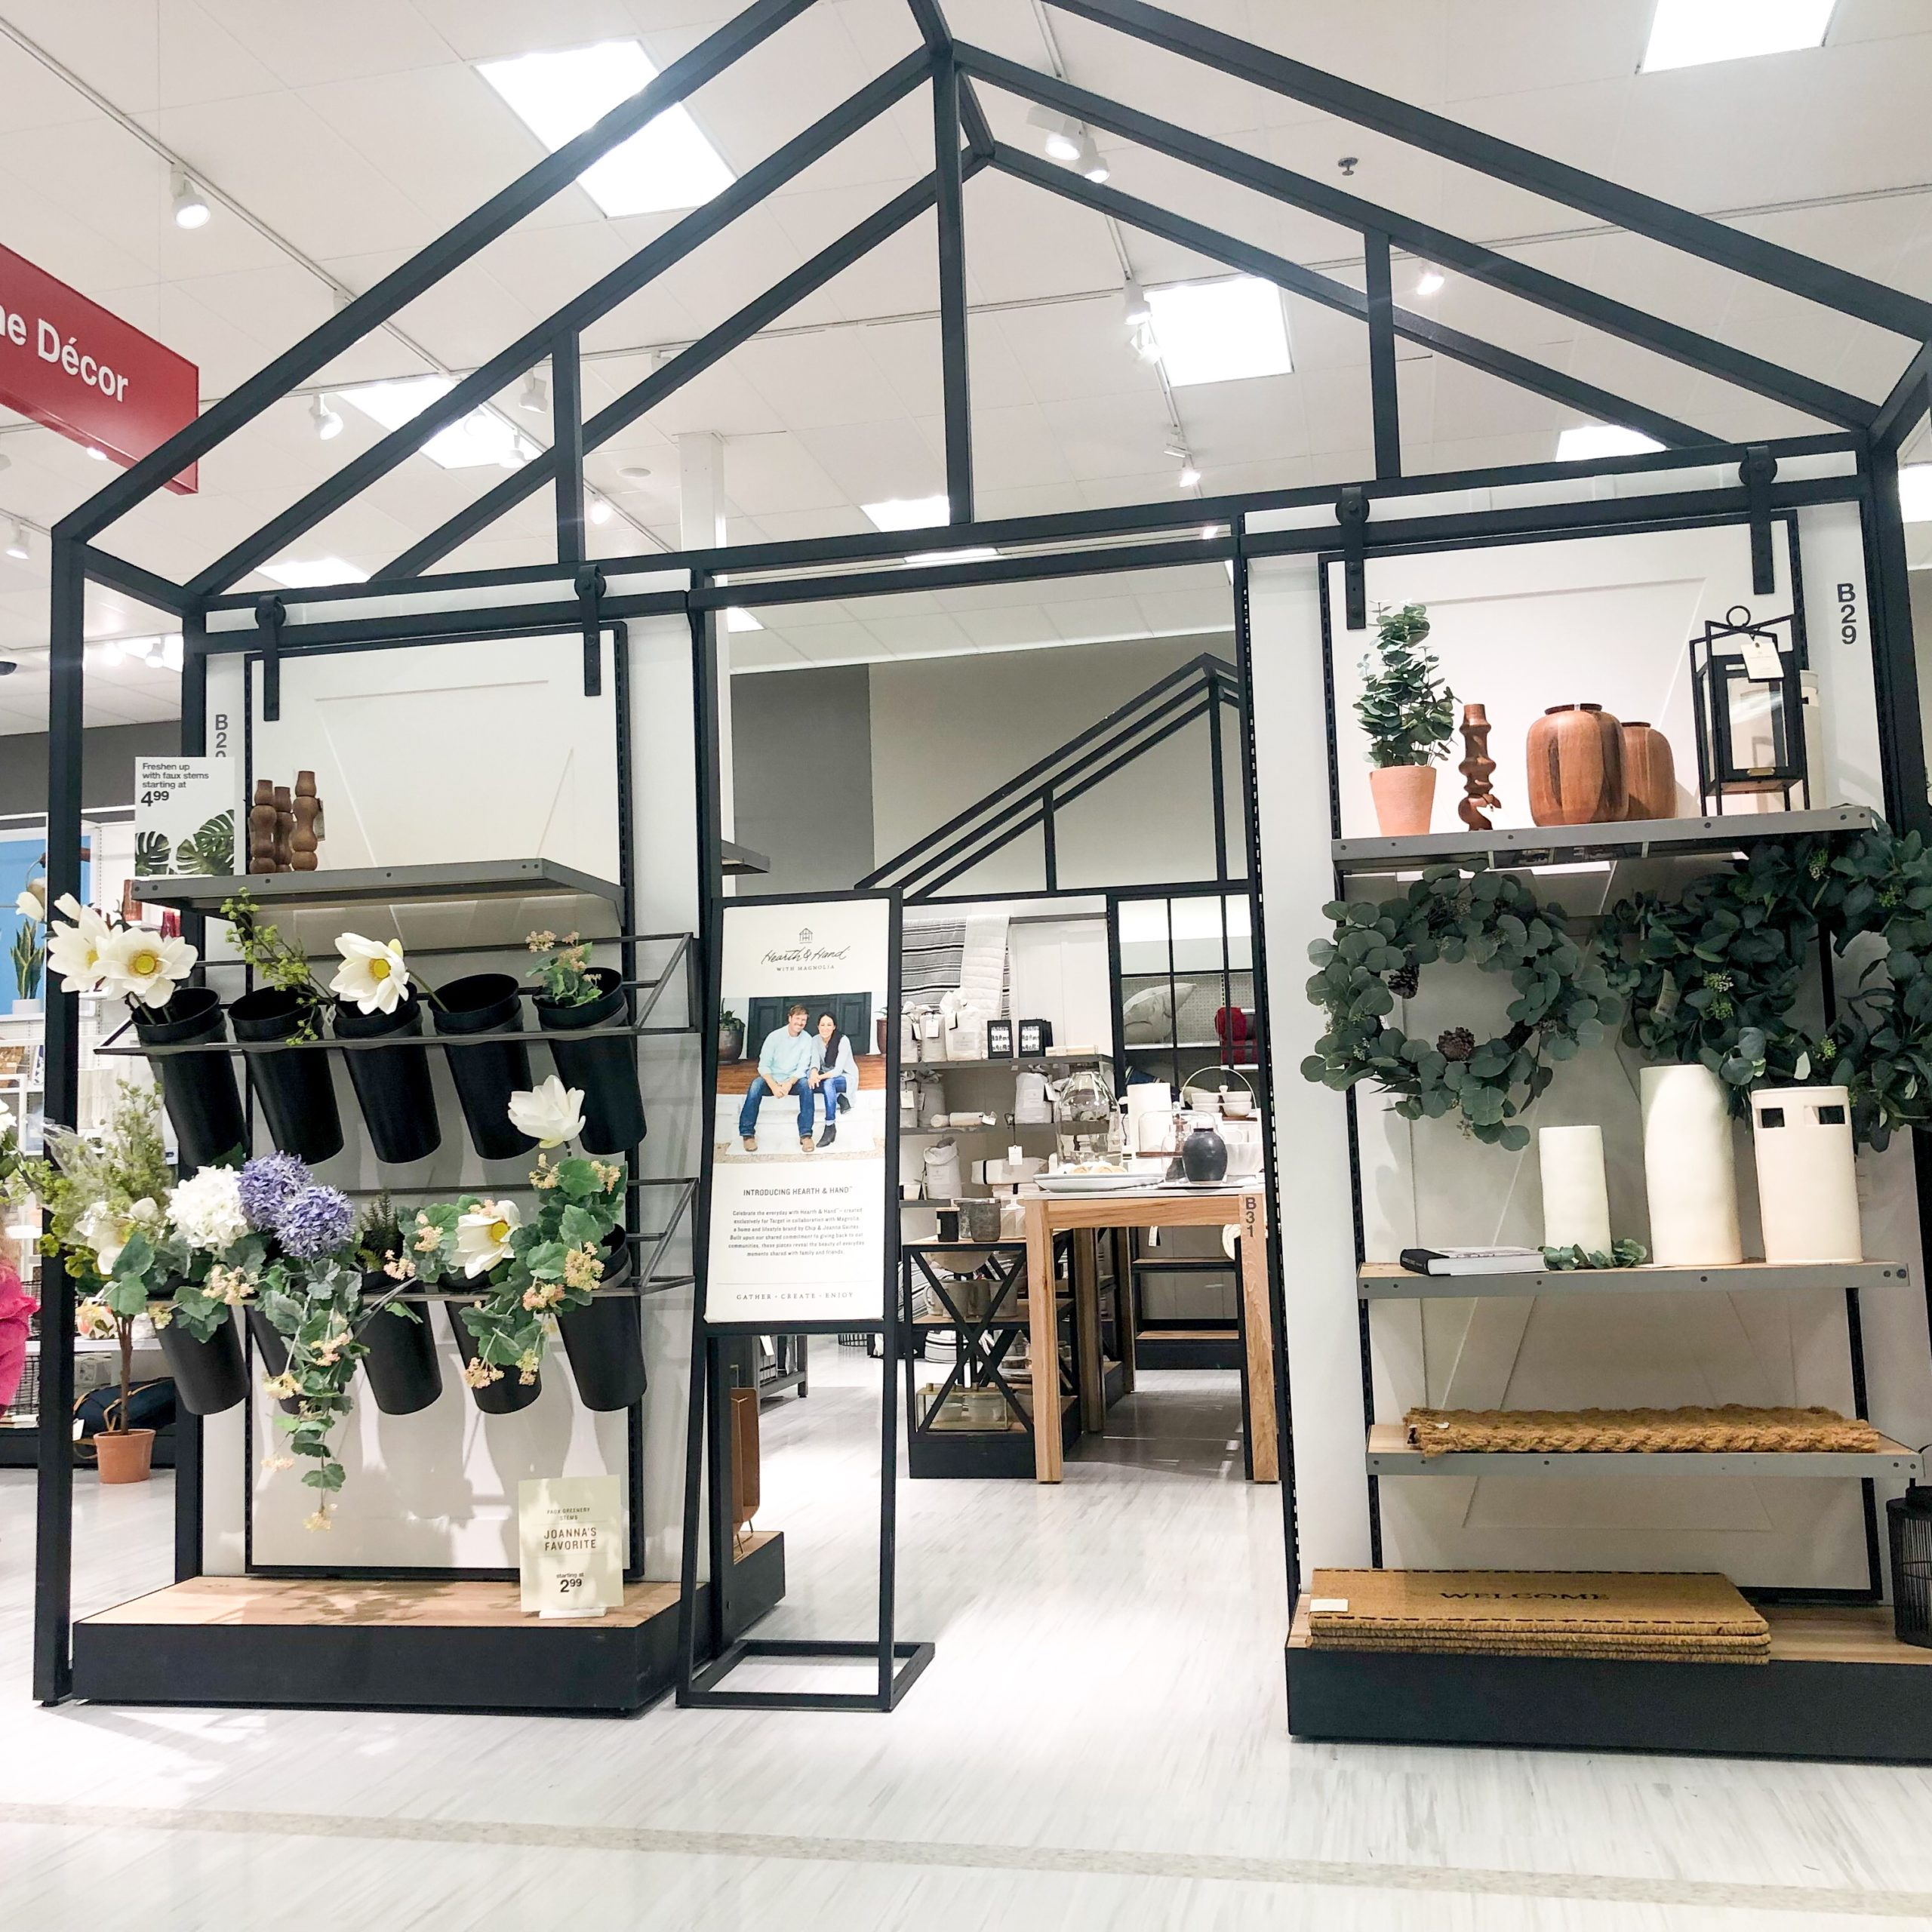 Magnolia Hearth & Hand at Target